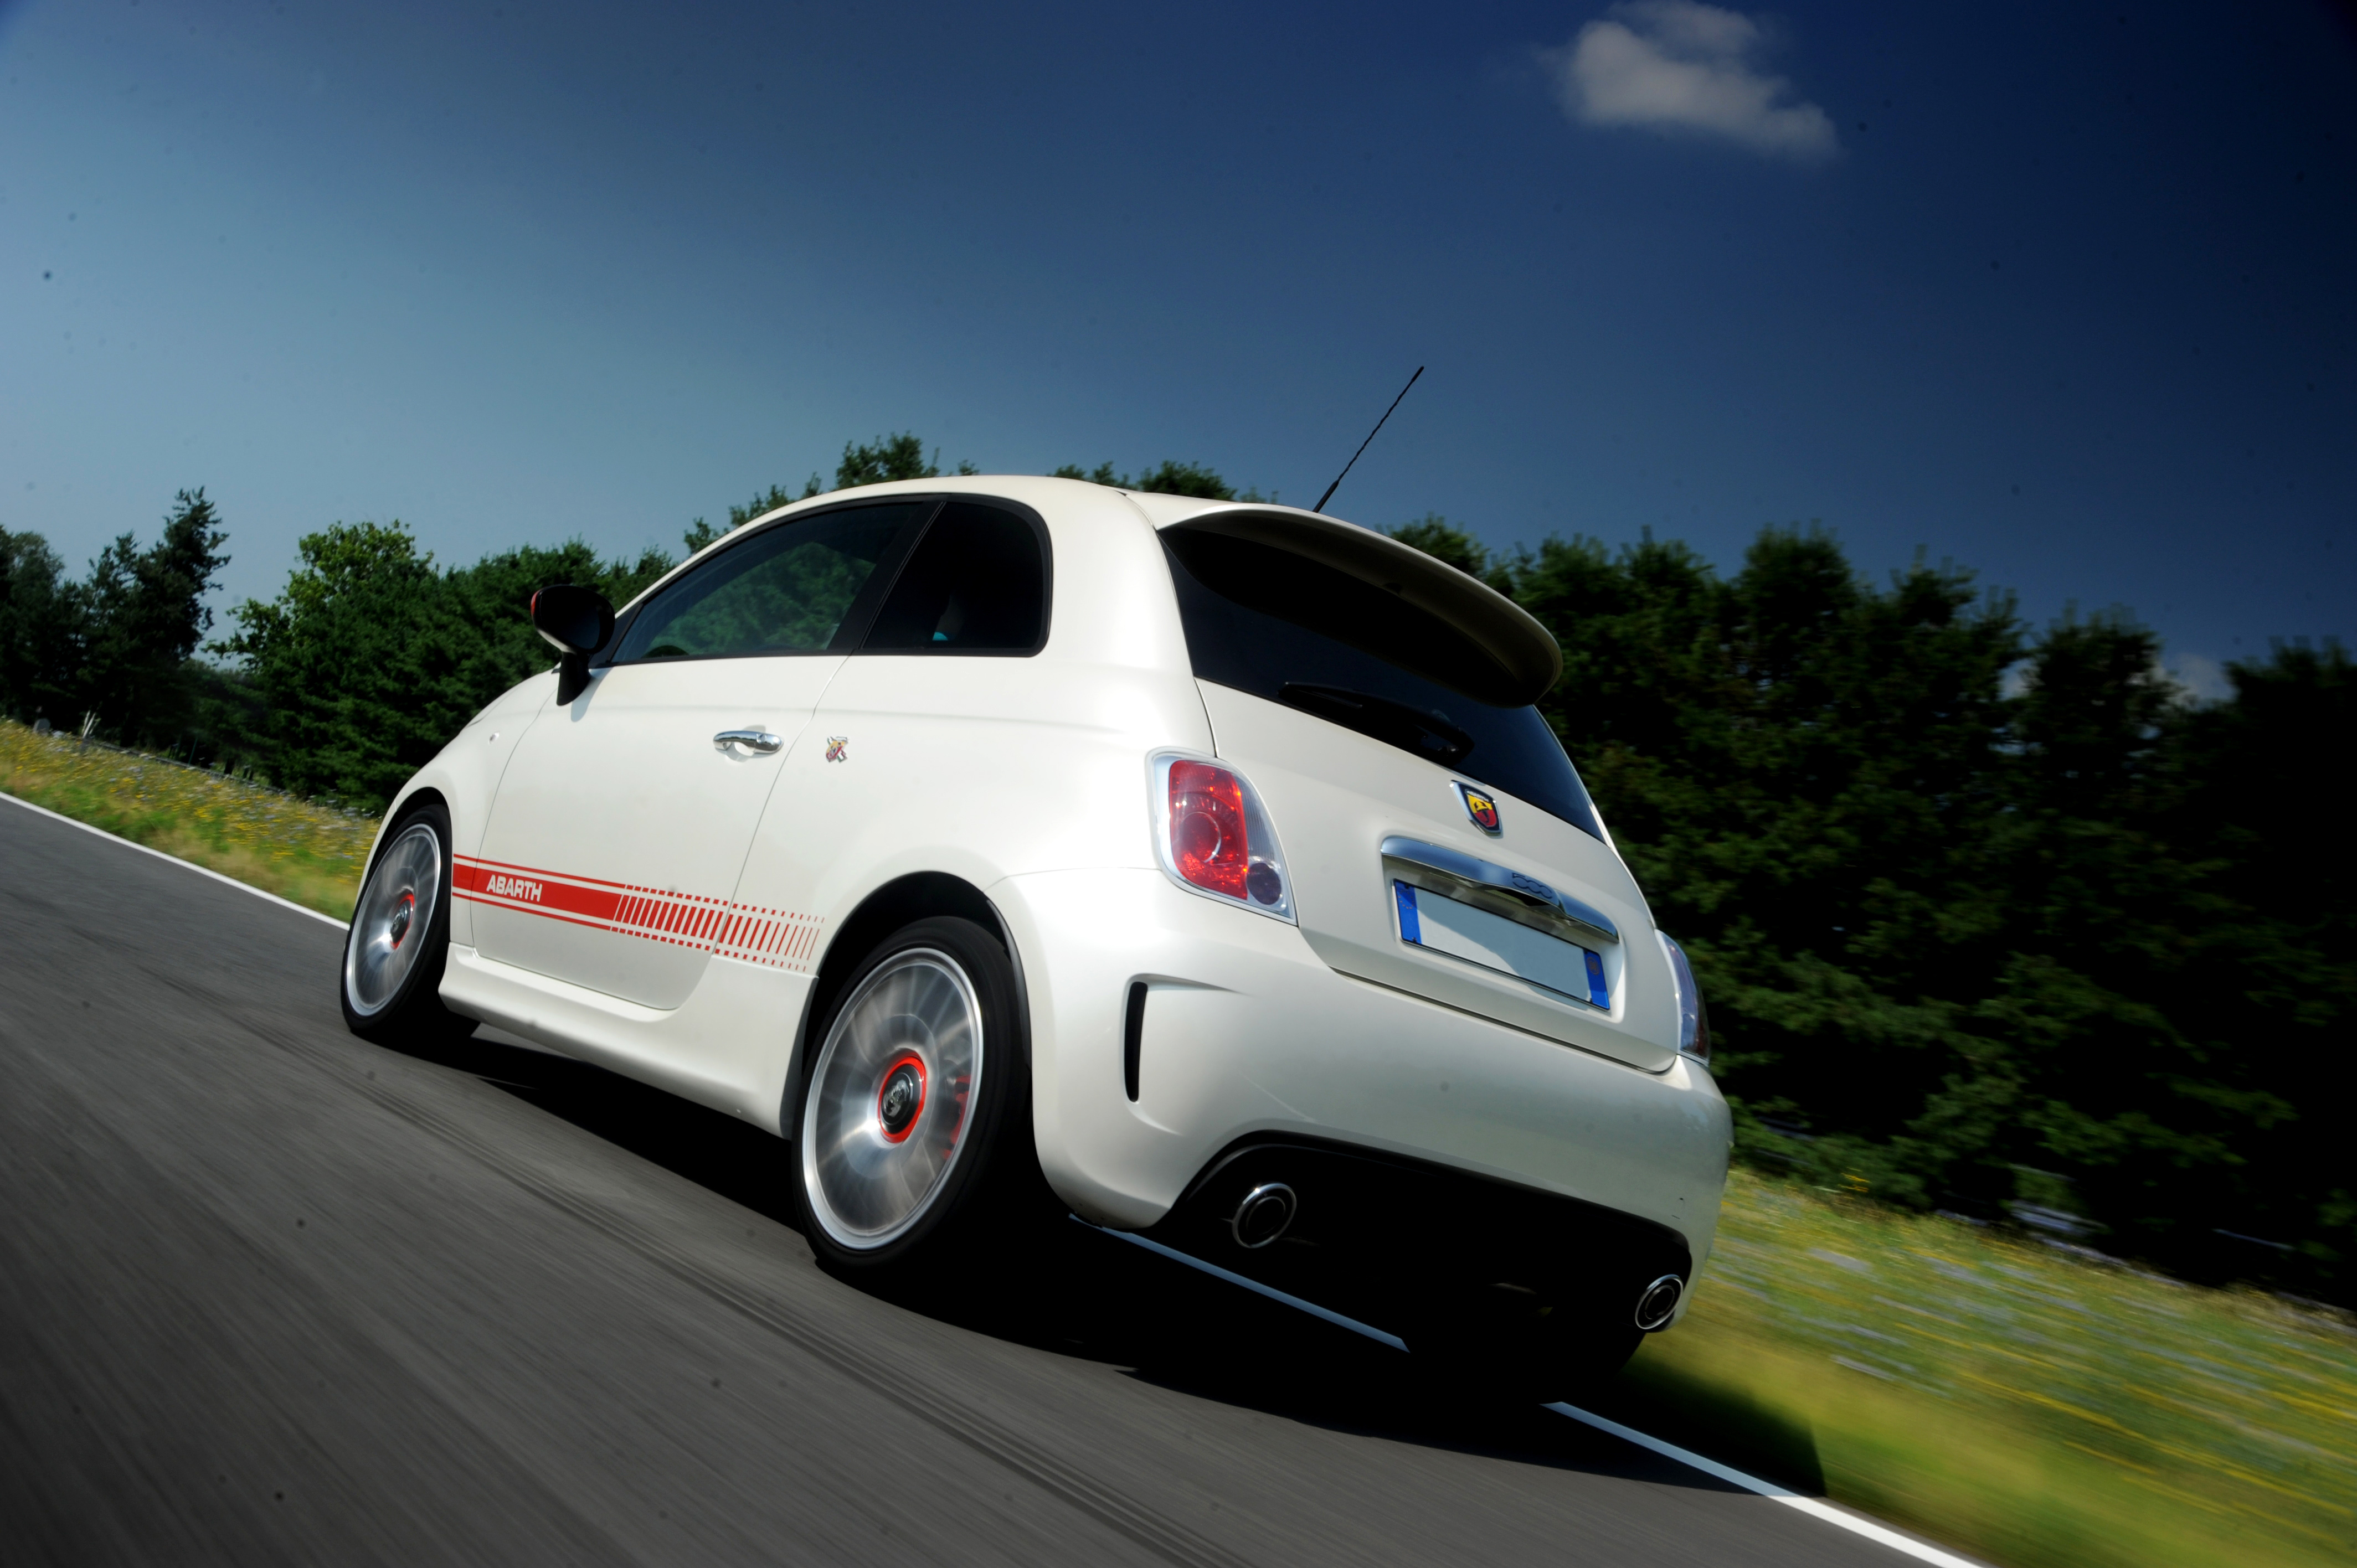 Superchips Ecu Remap Enhances The Abarth 500 Superchips